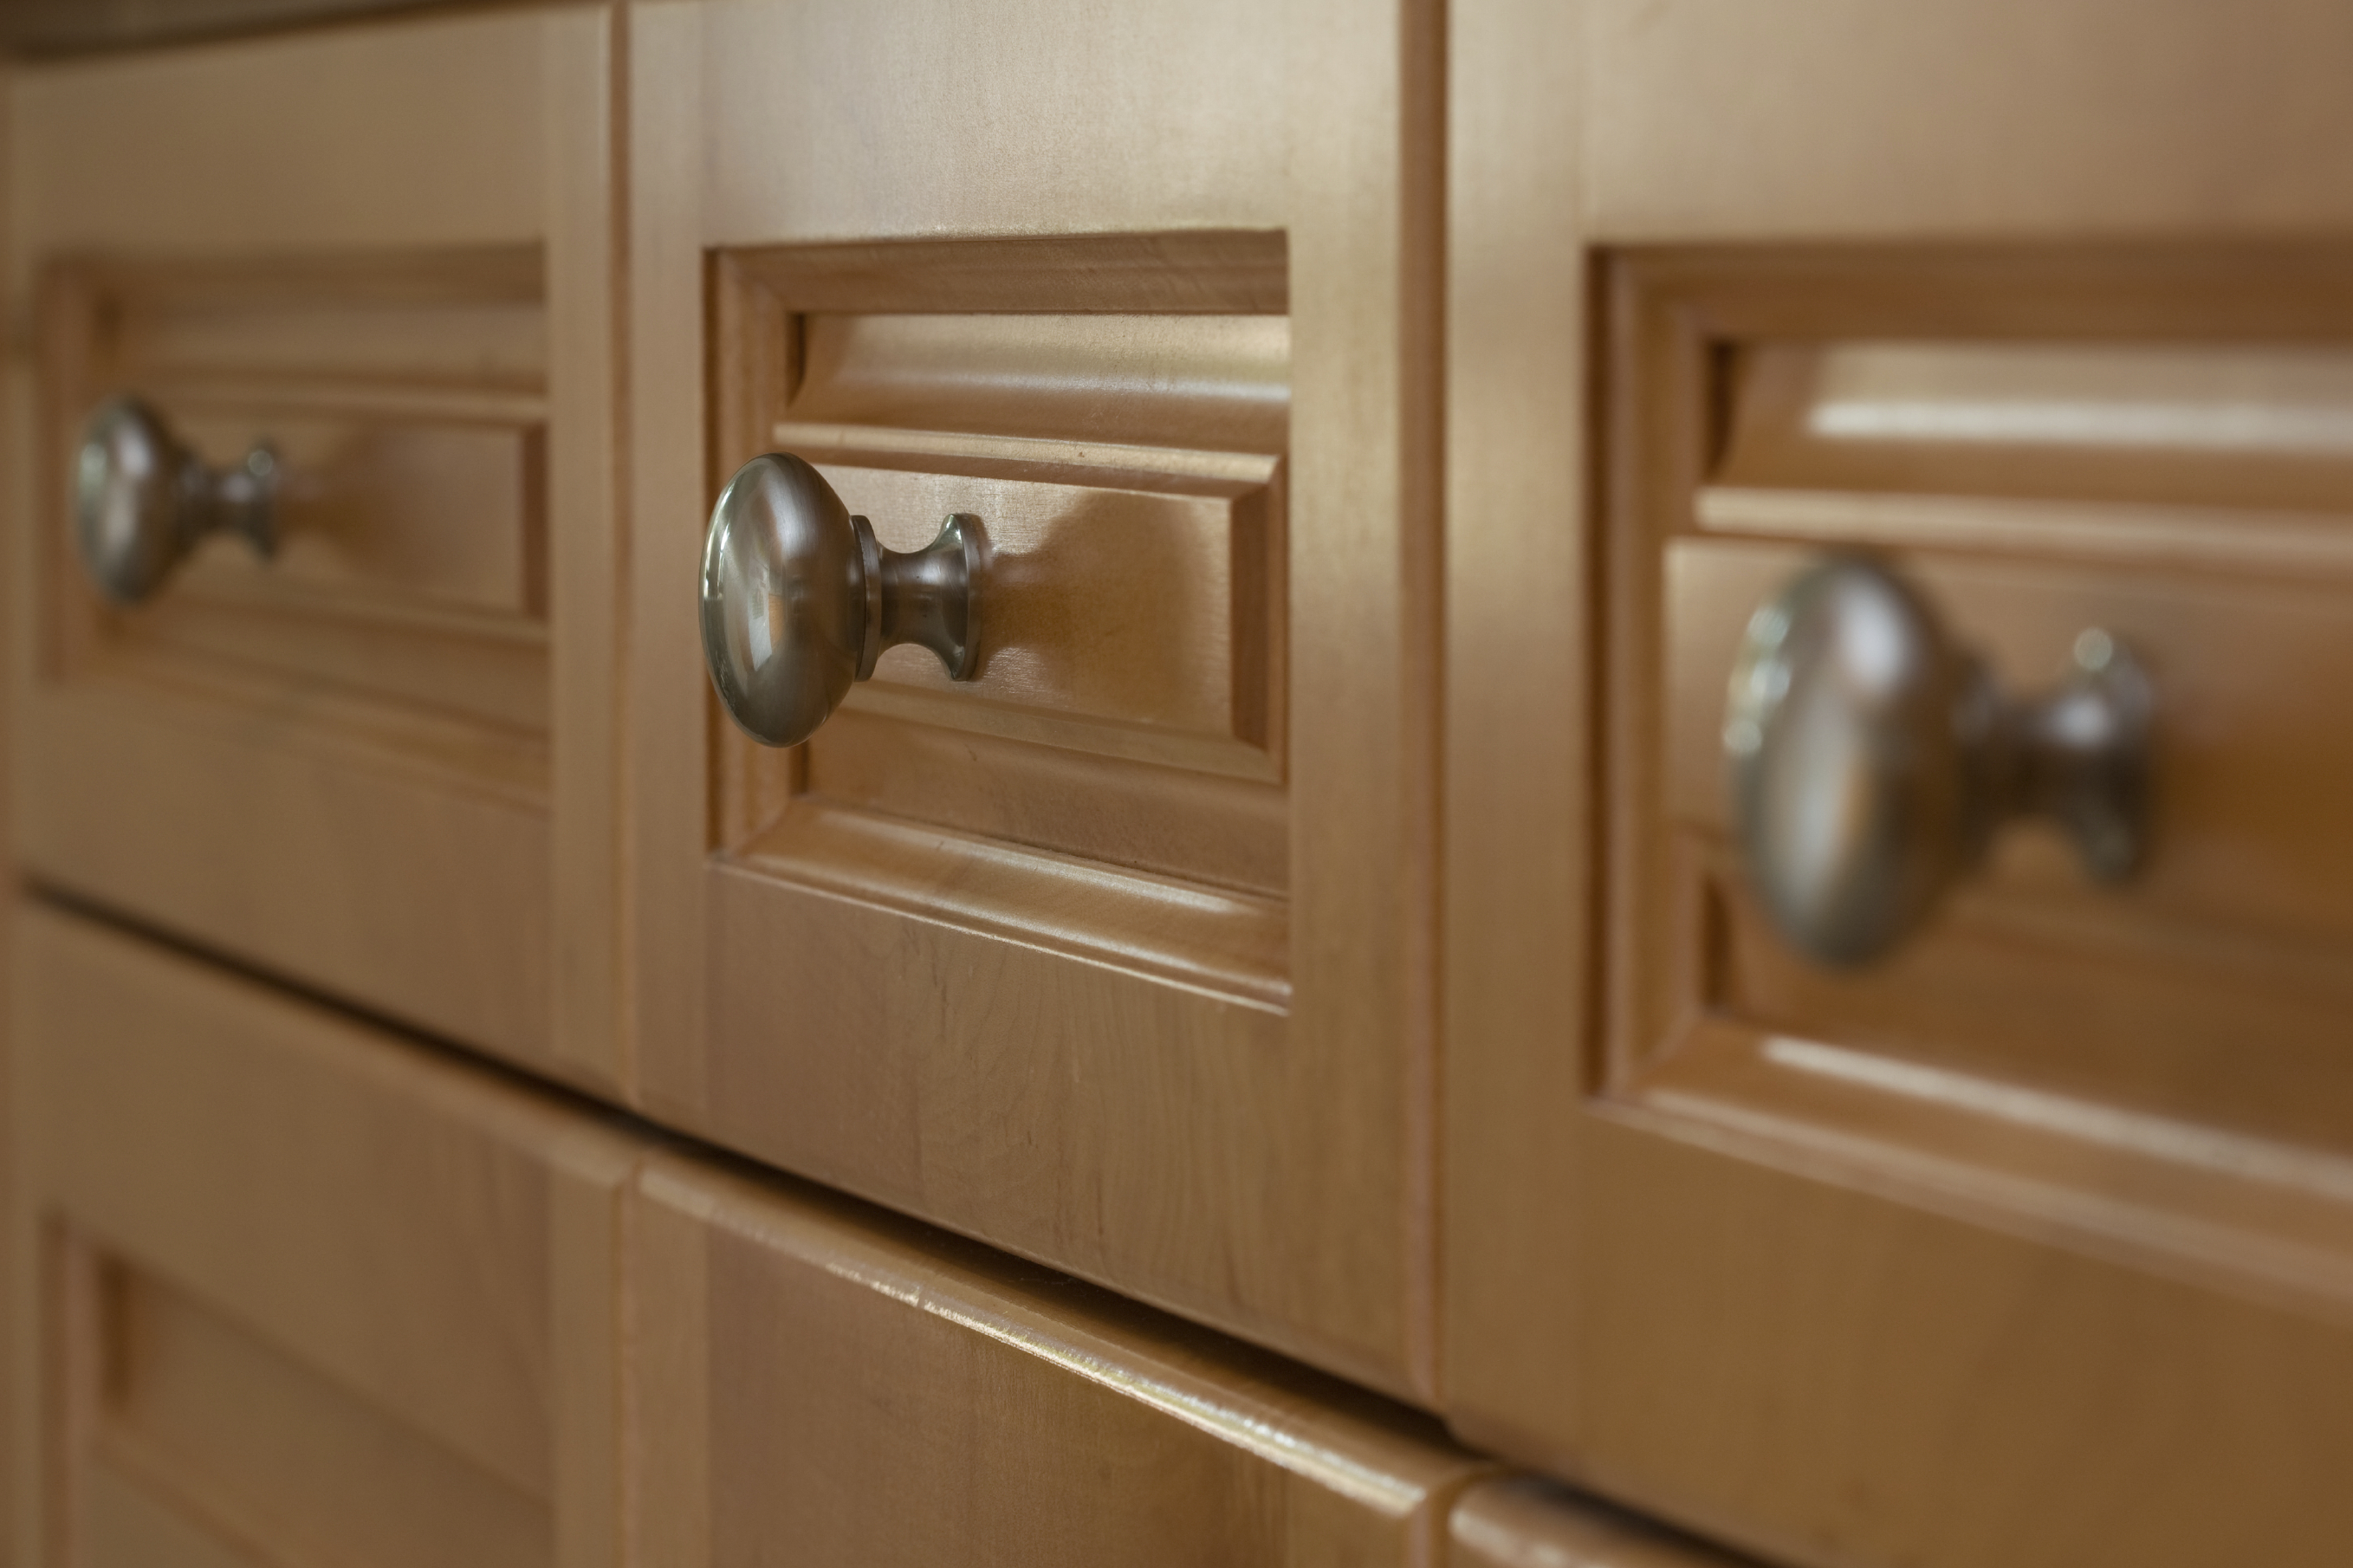 A reader asks what is the correct size for cabinet handles for Kitchen and bathroom cabinet hardware